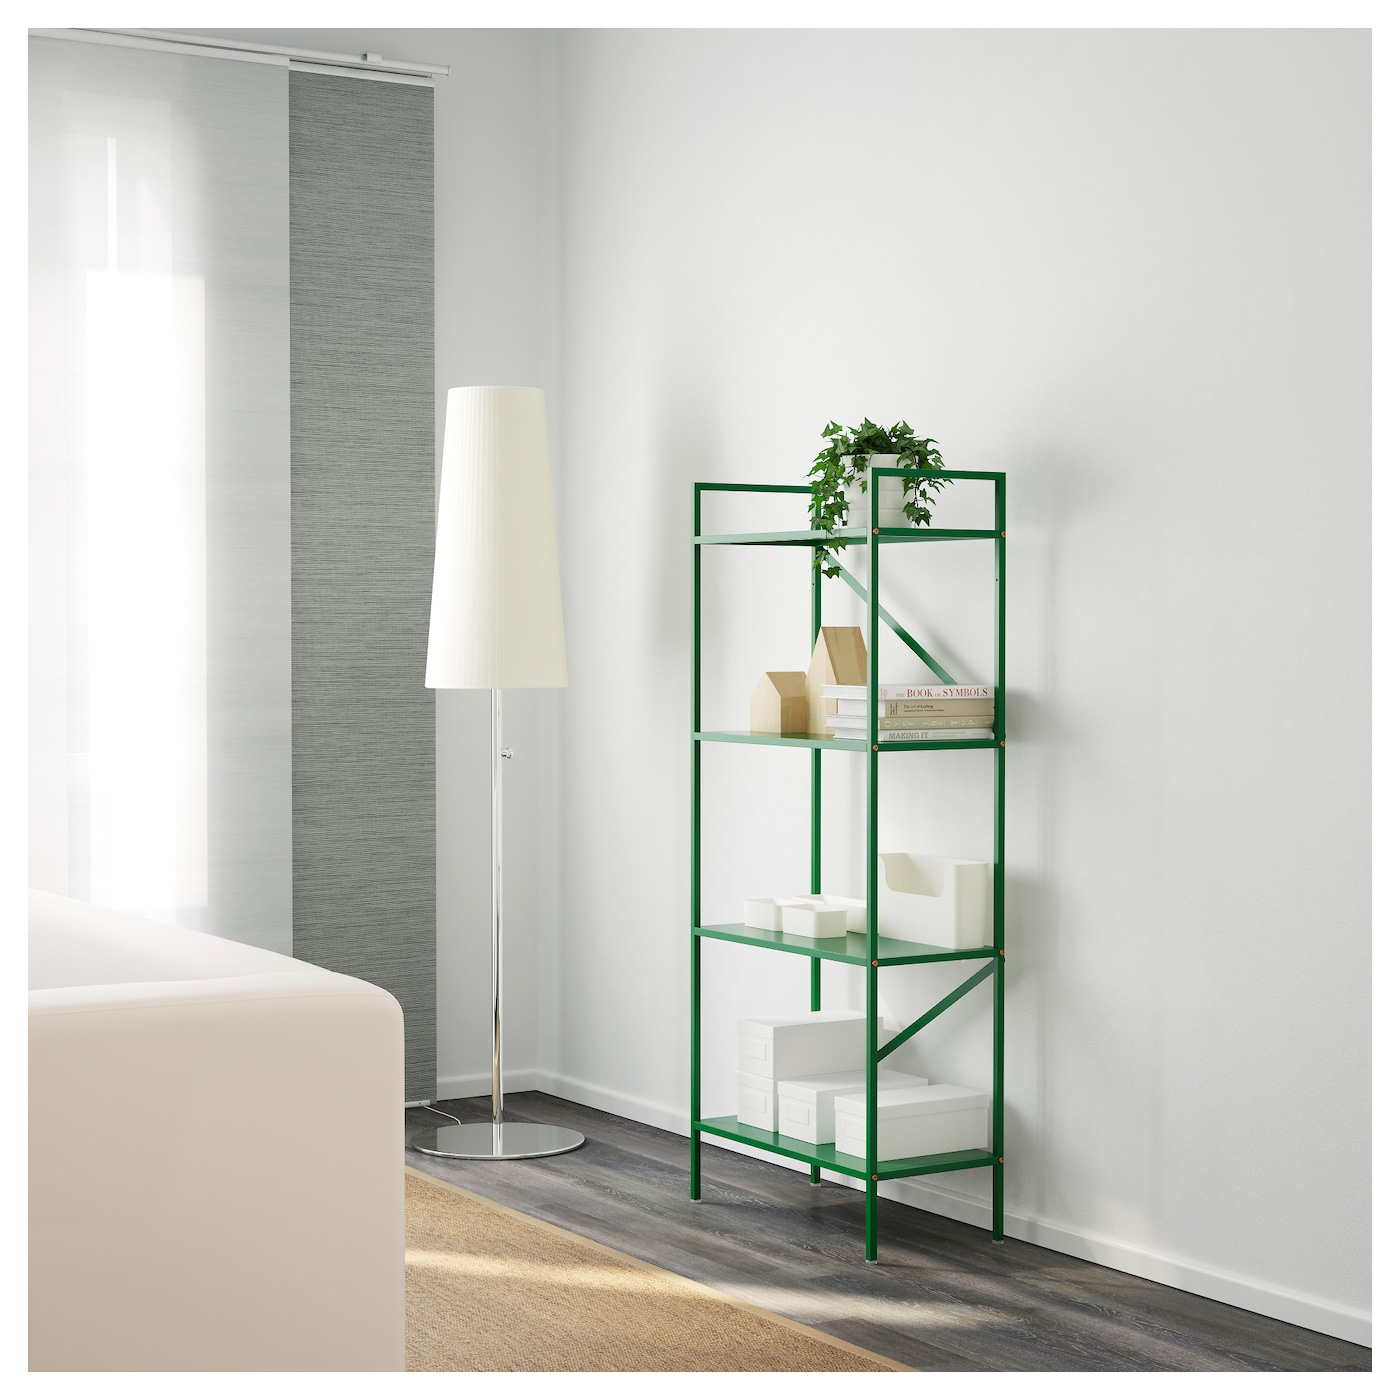 IKEA DRAGET shelving unit